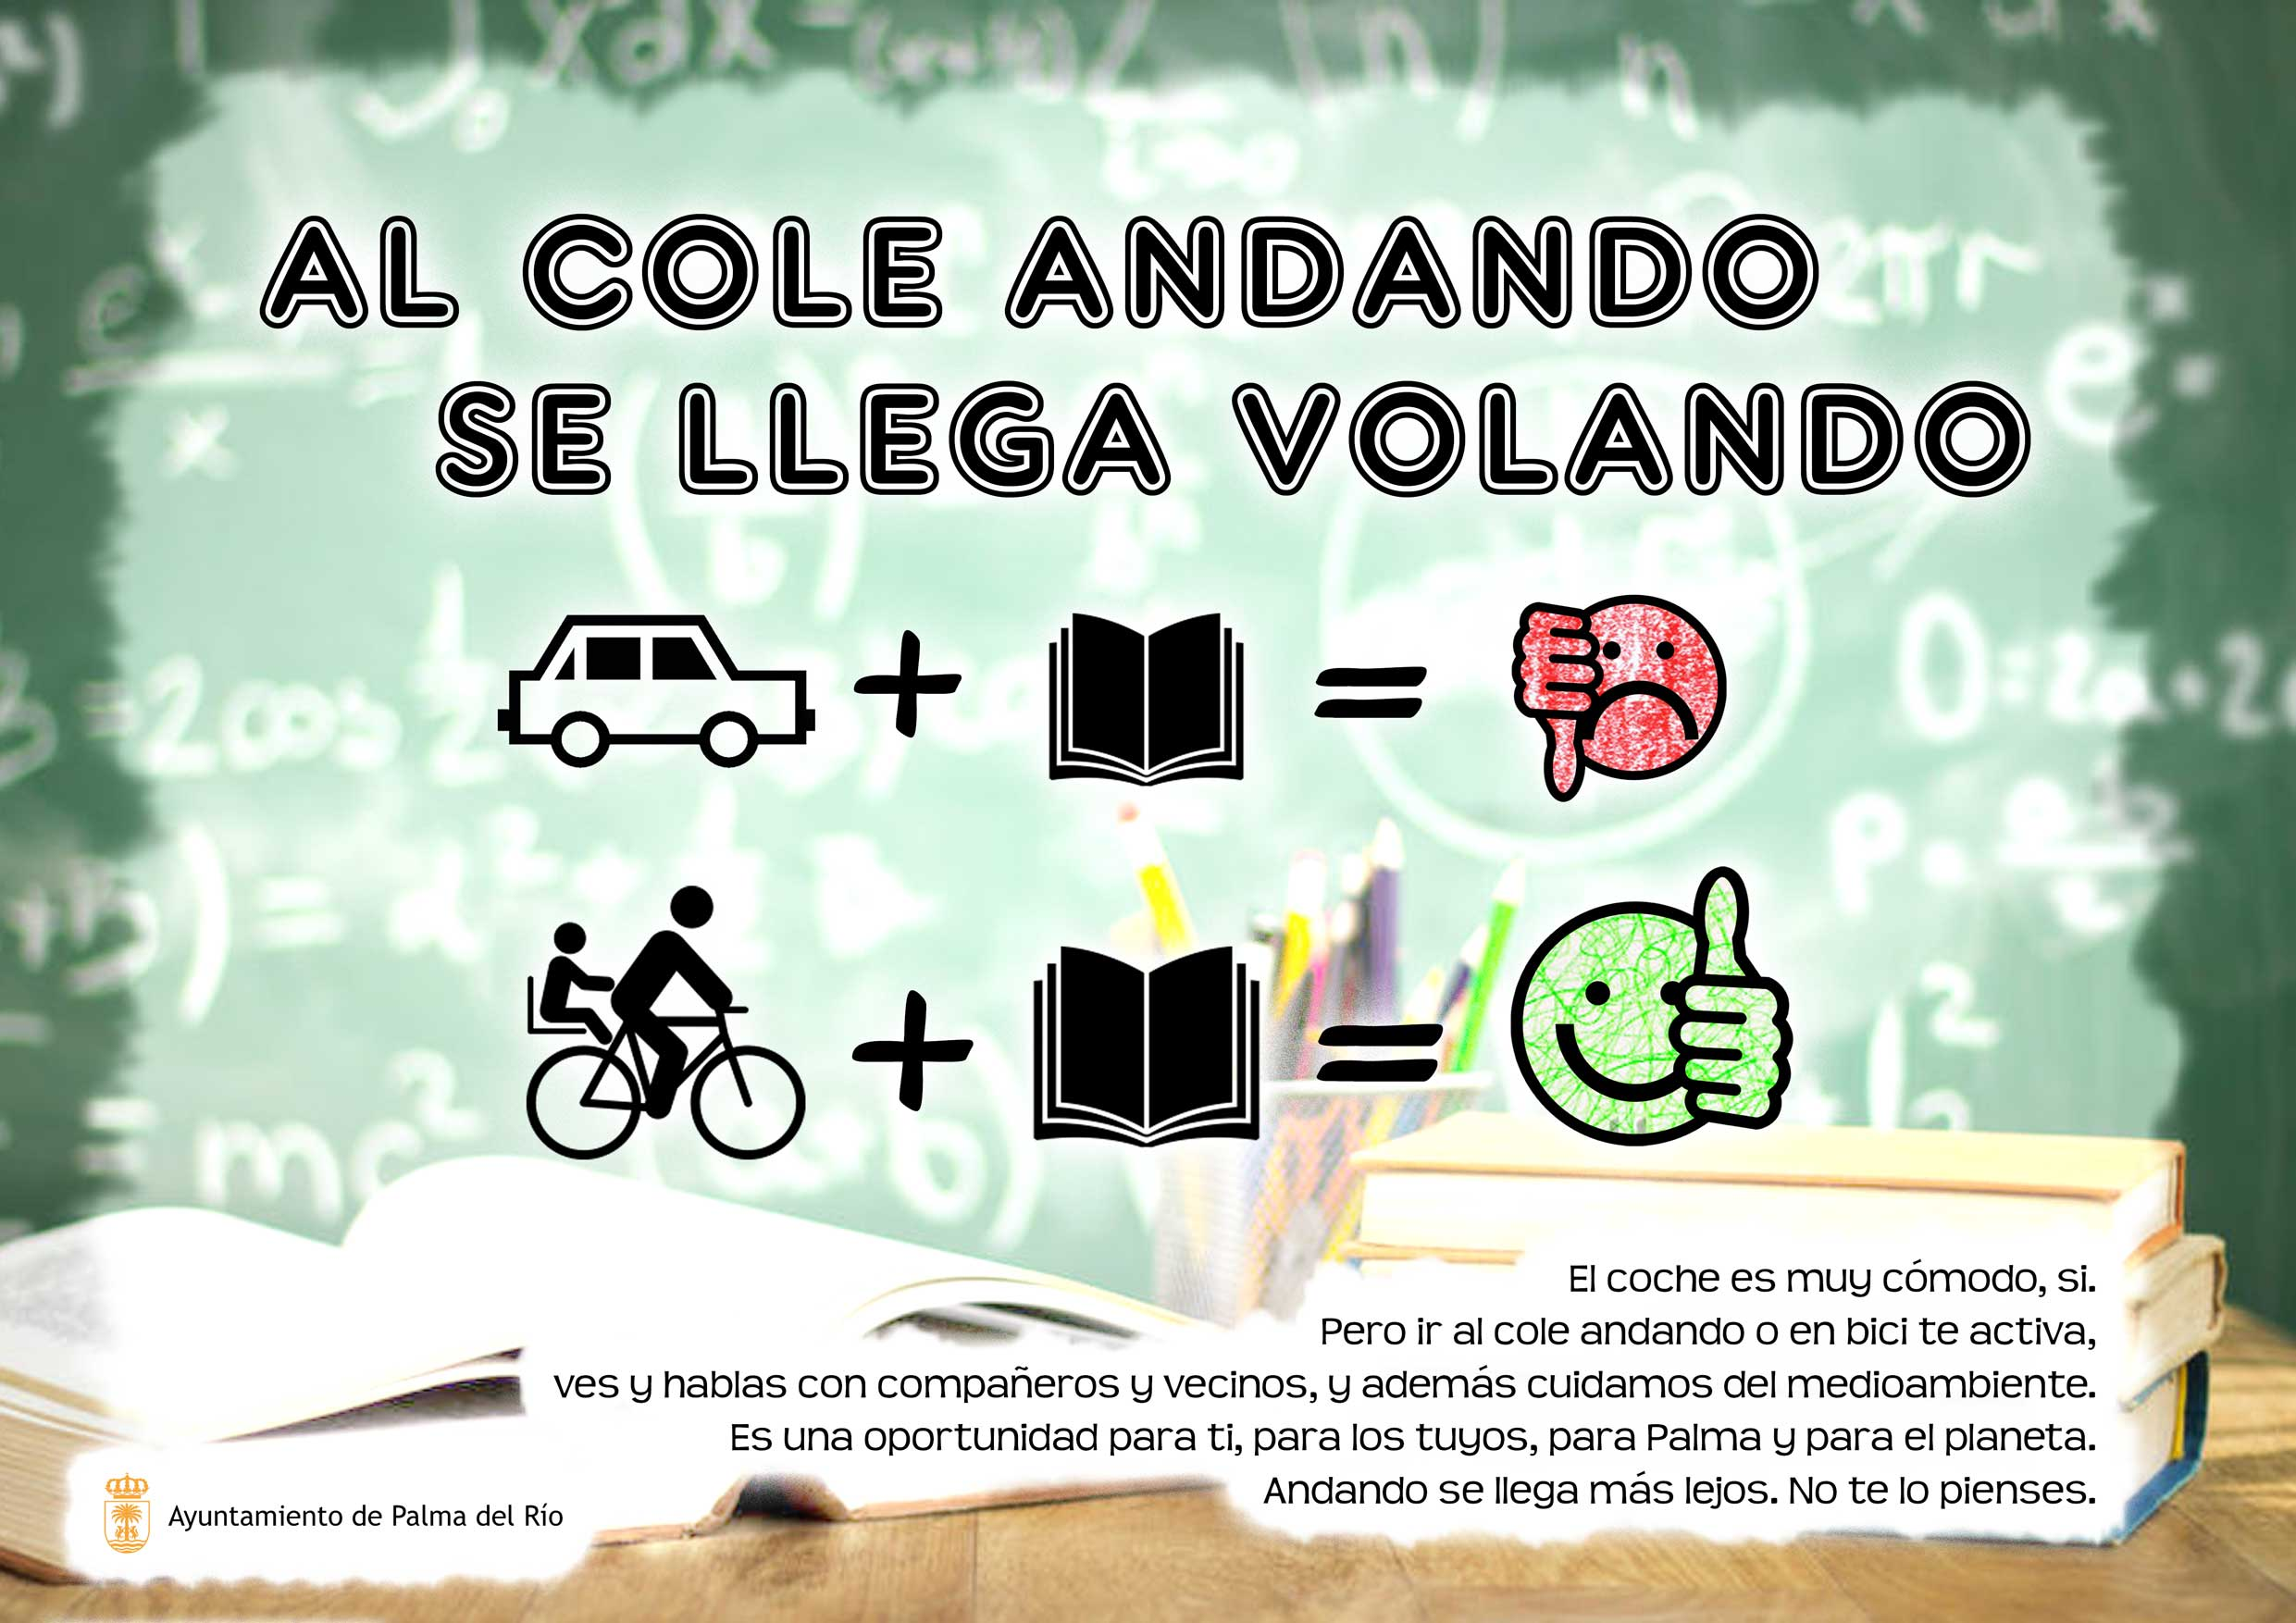 https://www.palmadelrio.es/sites/default/files/poster-cole-andando-web.jpg